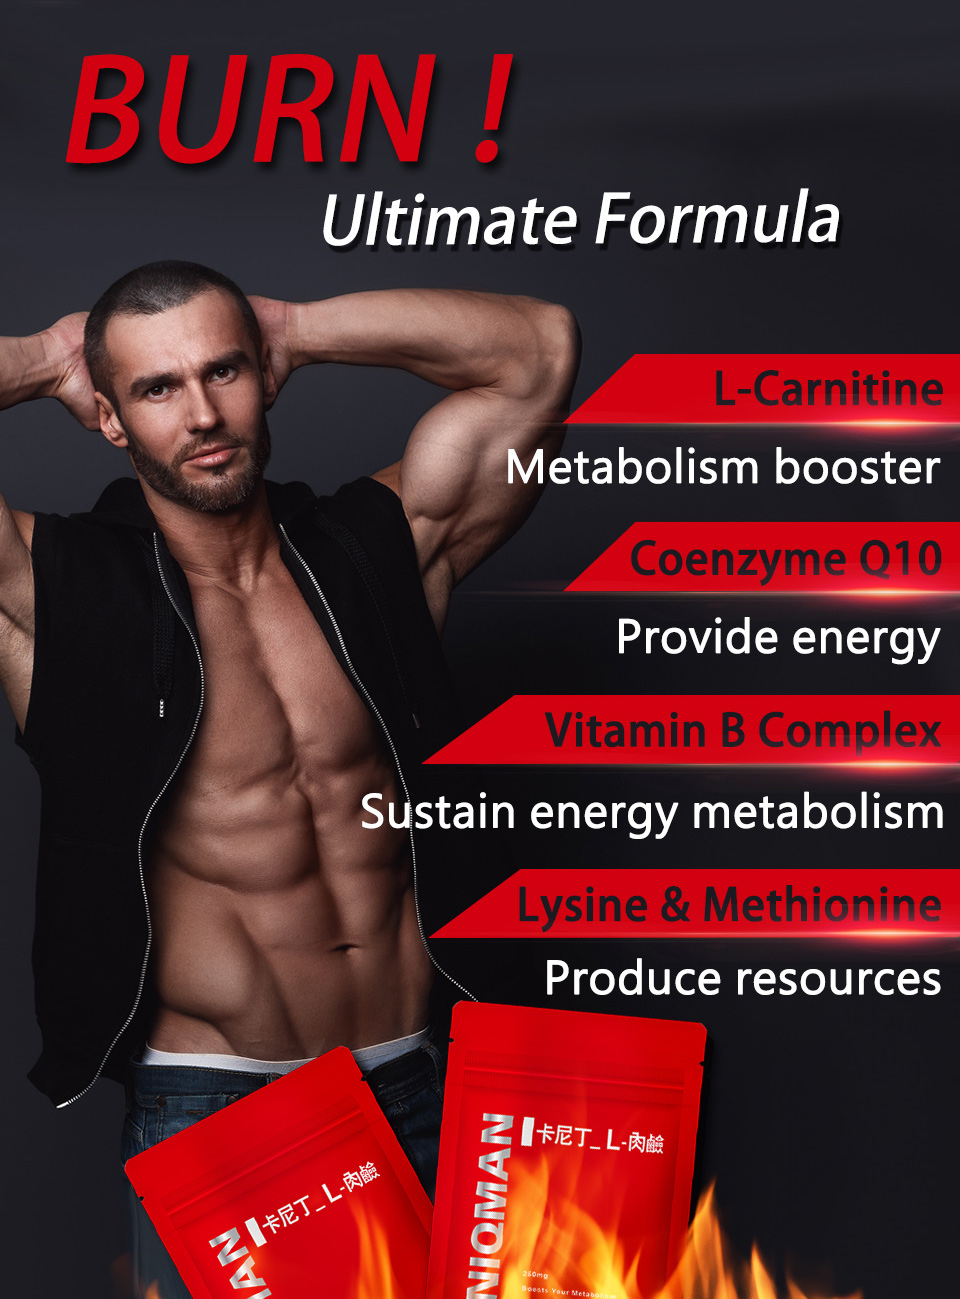 UNIQMAN L-carnitine provides energy and burns fat in our body